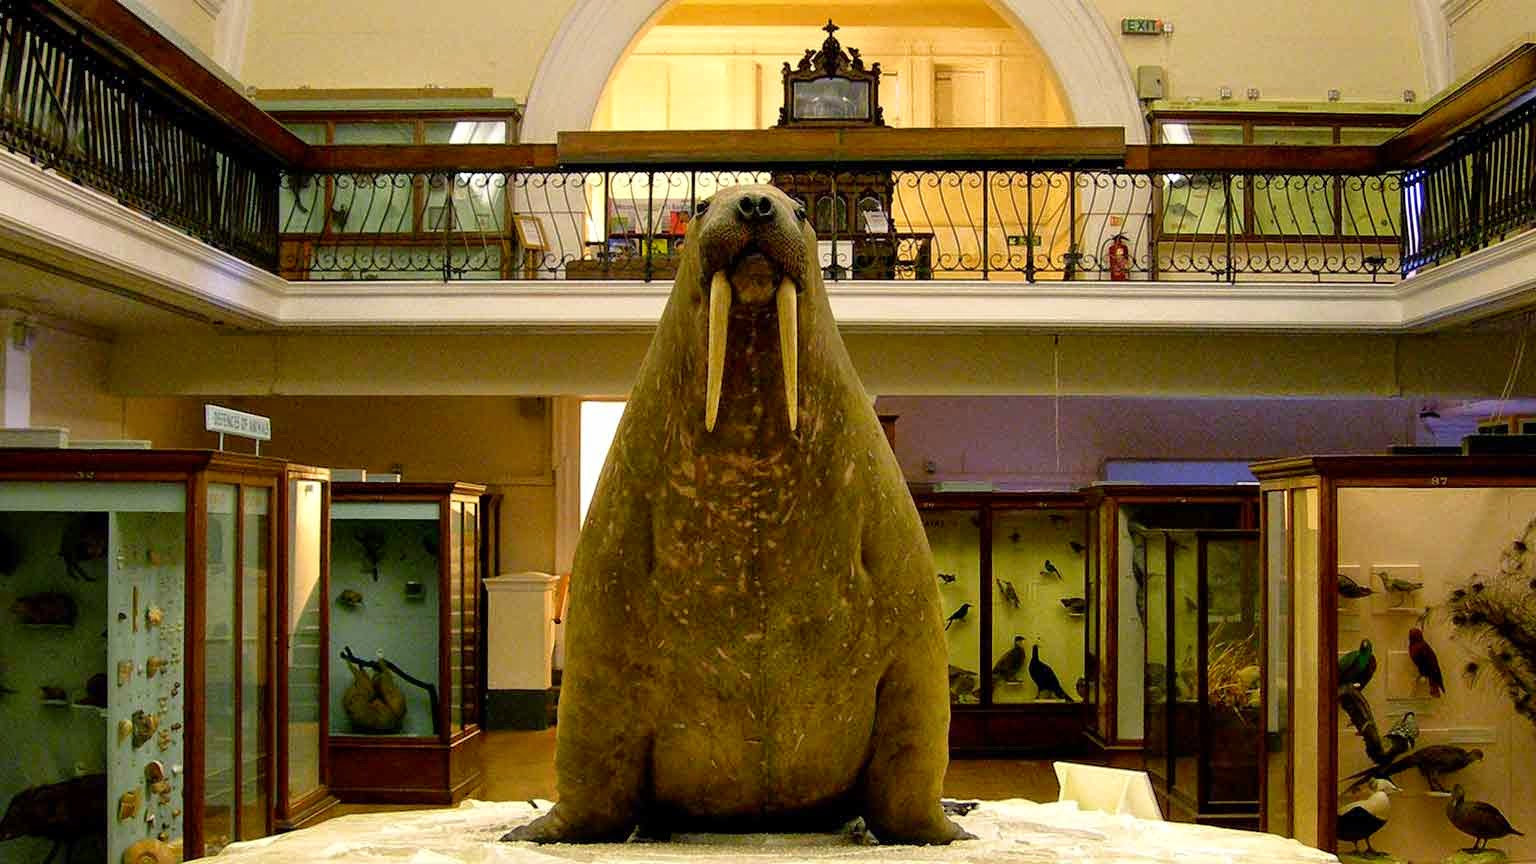 Forest Hill Society: The History and Collections of the Horniman Museum